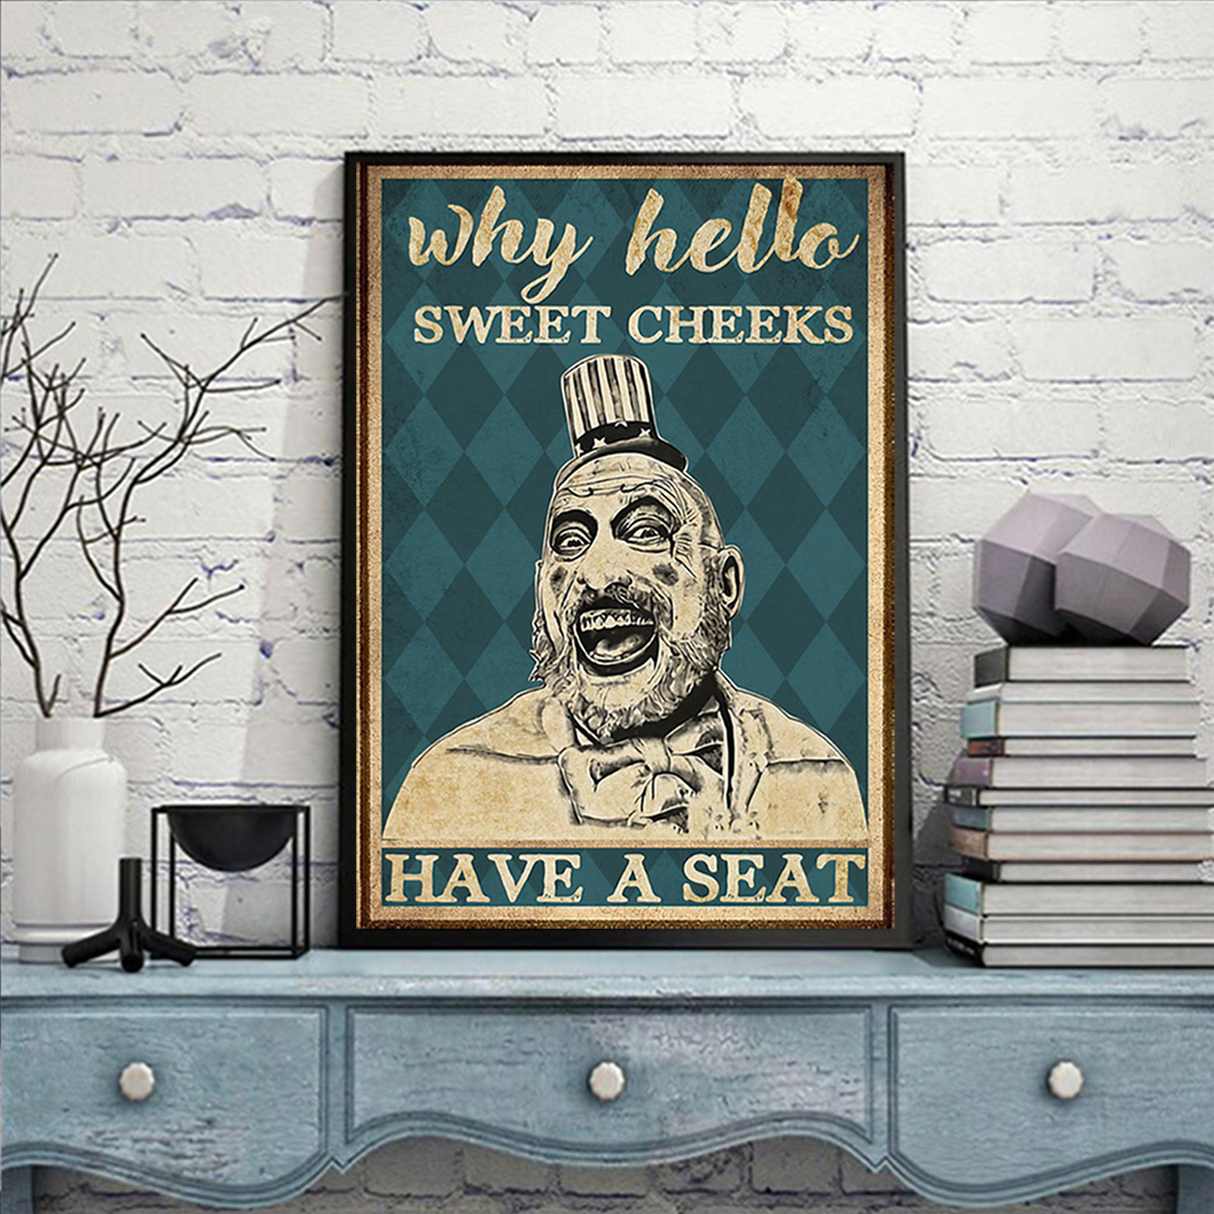 Captain spaulding why hello sweet cheeks have a seat poster A2